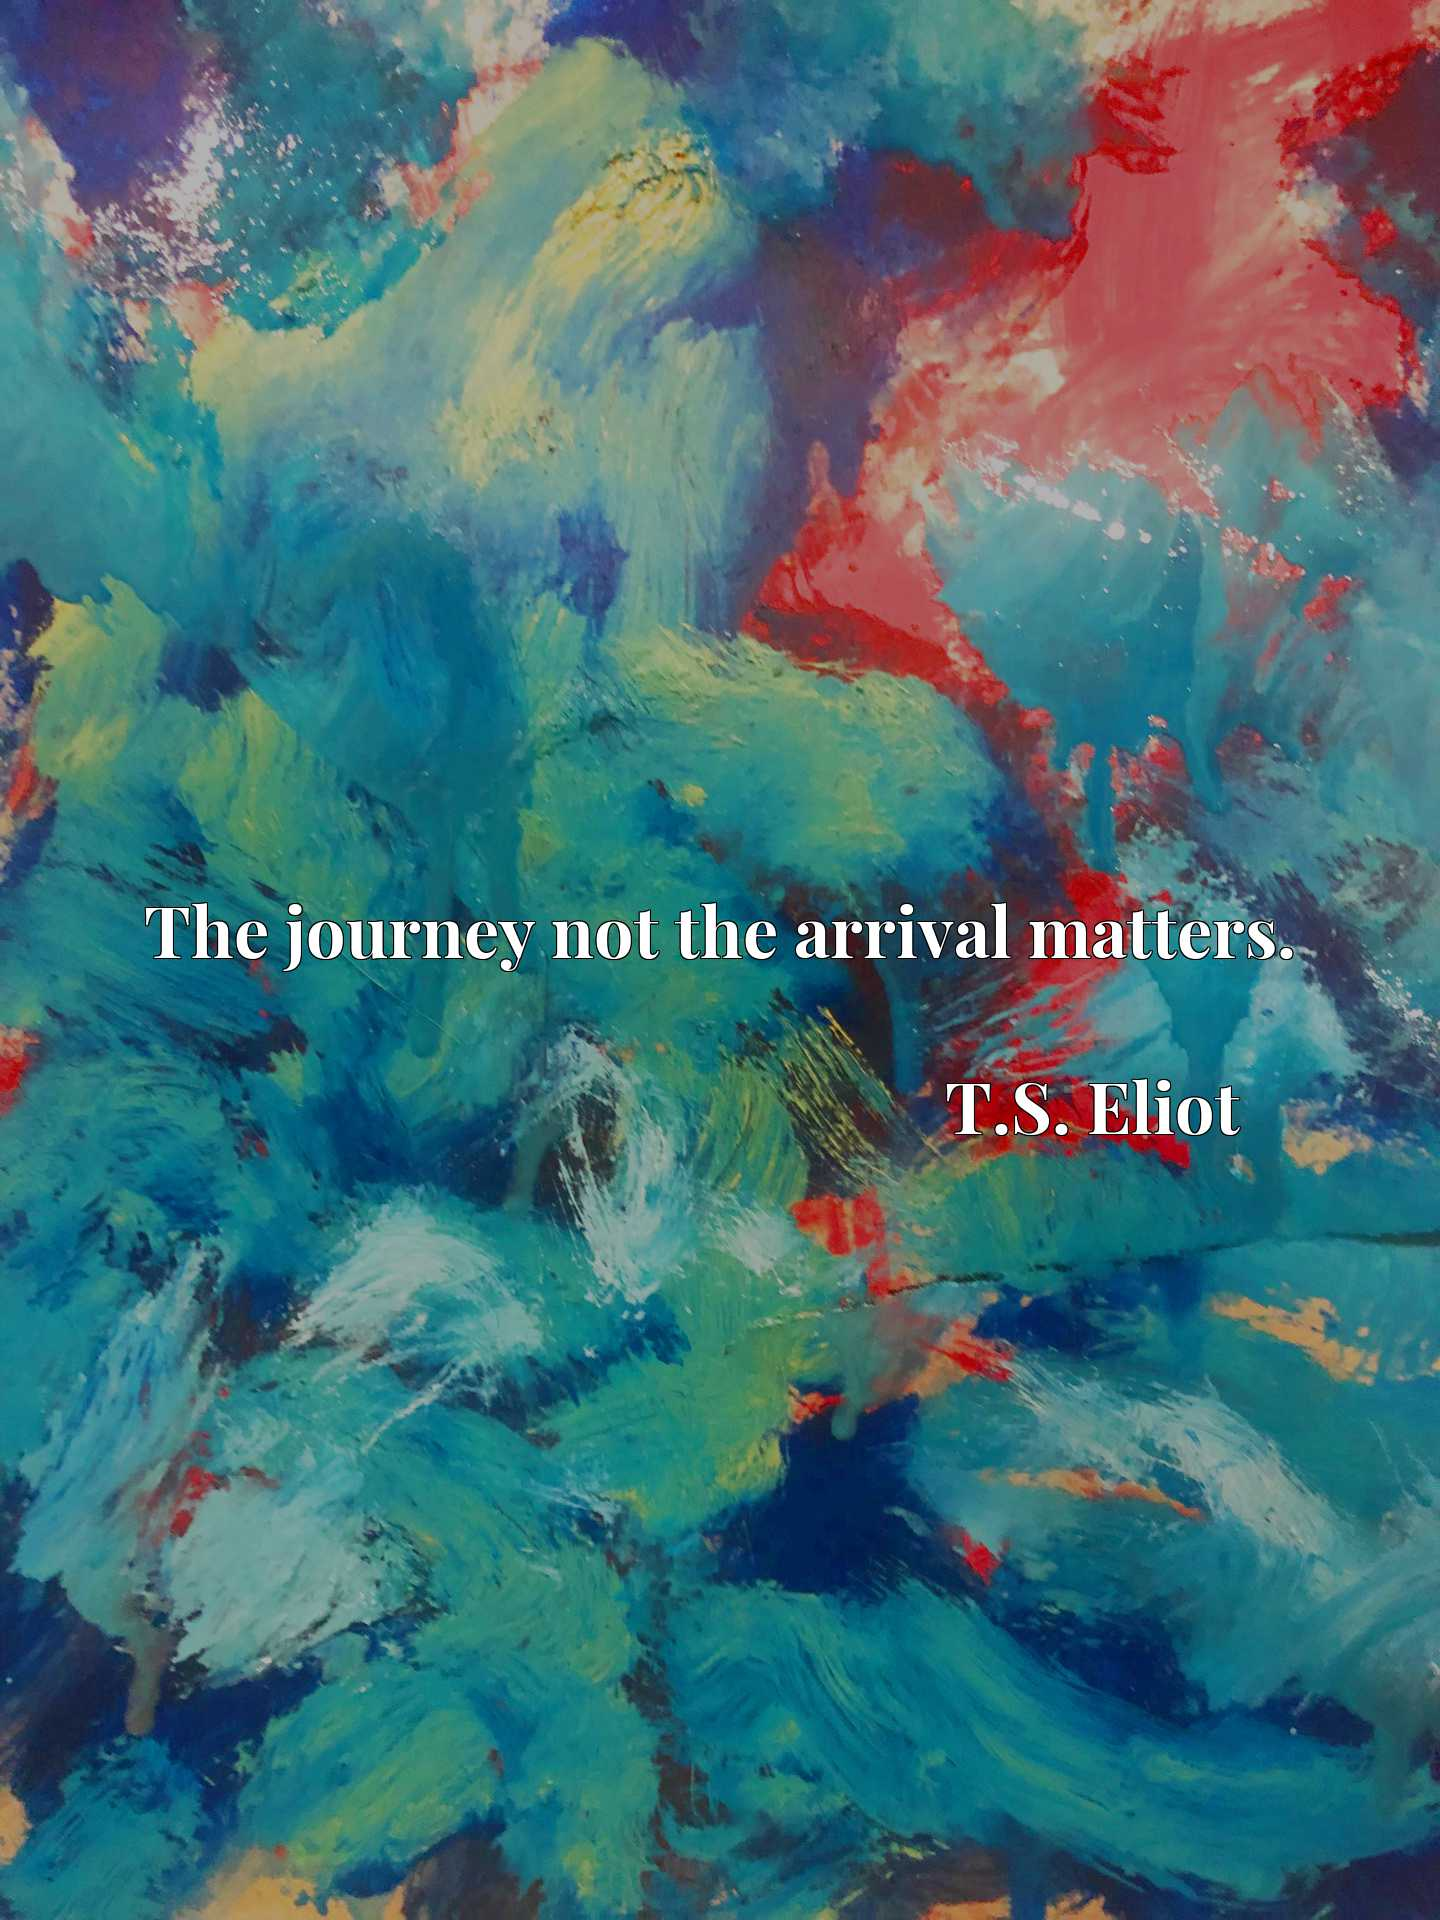 Quote Picture :The journey not the arrival matters.